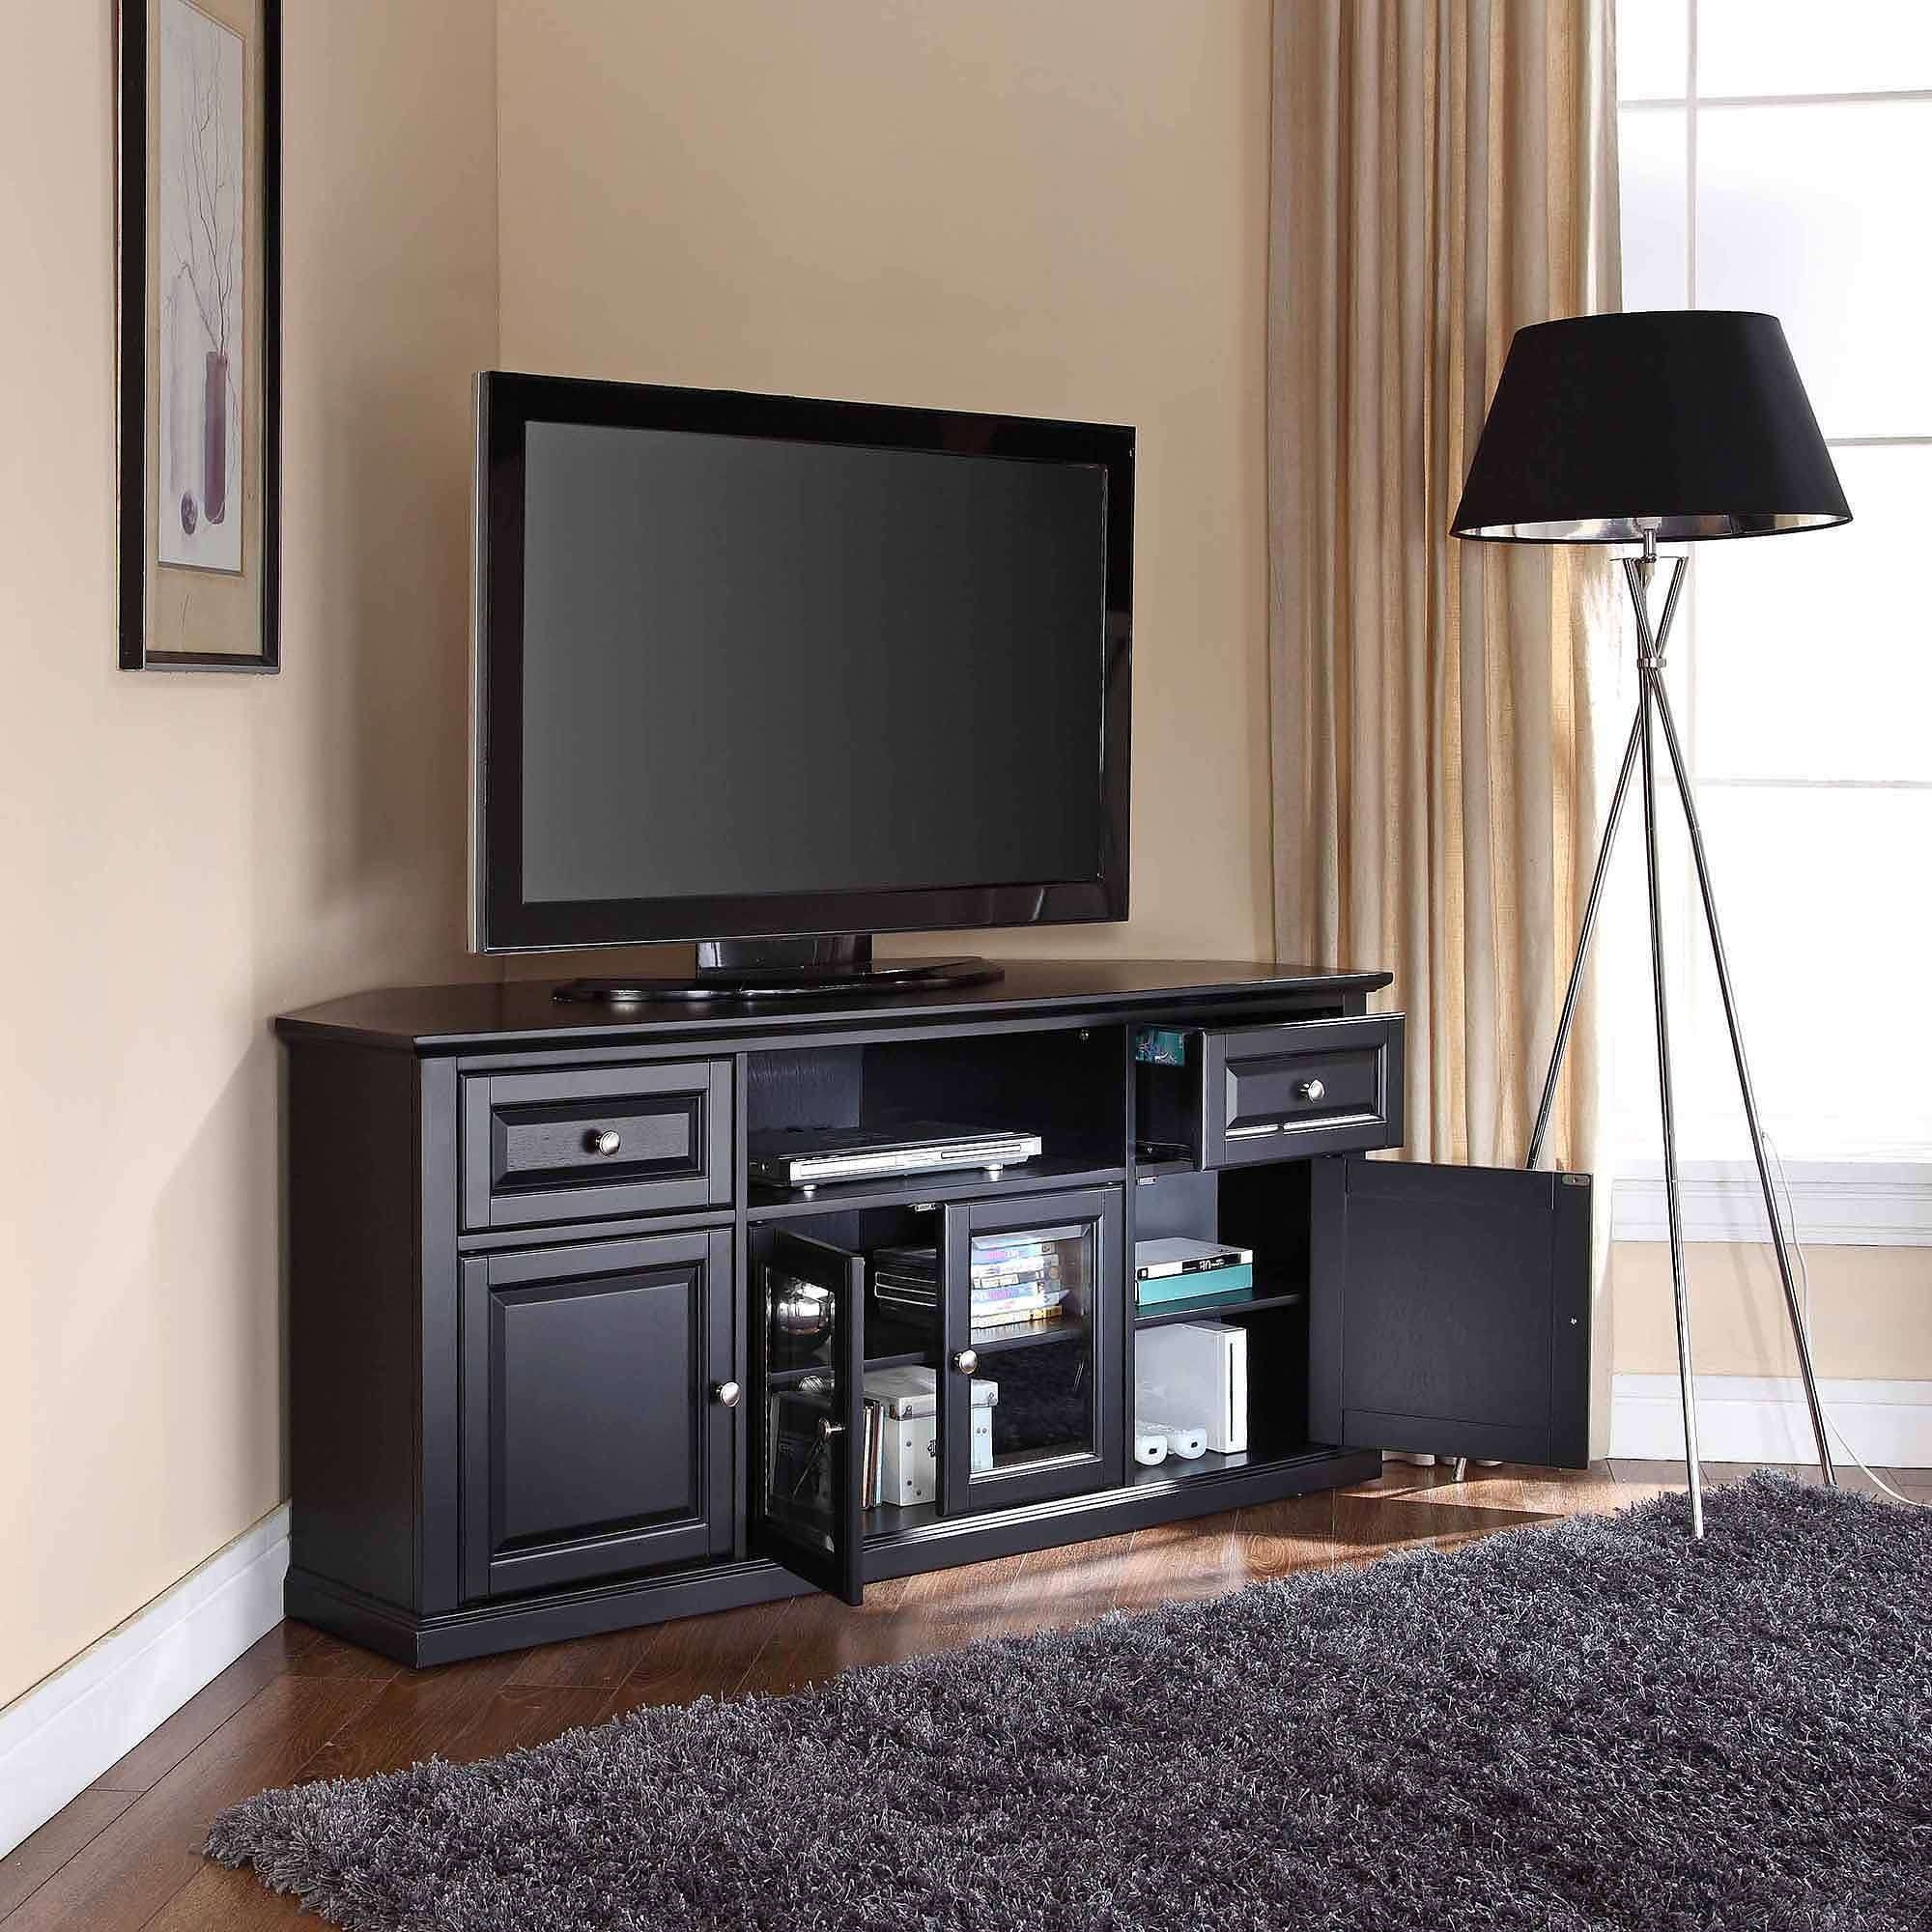 """Crosley Furniture Corner Tv Stand For Tvs Up To 60"""" – Walmart In Low Corner Tv Stands (View 11 of 15)"""